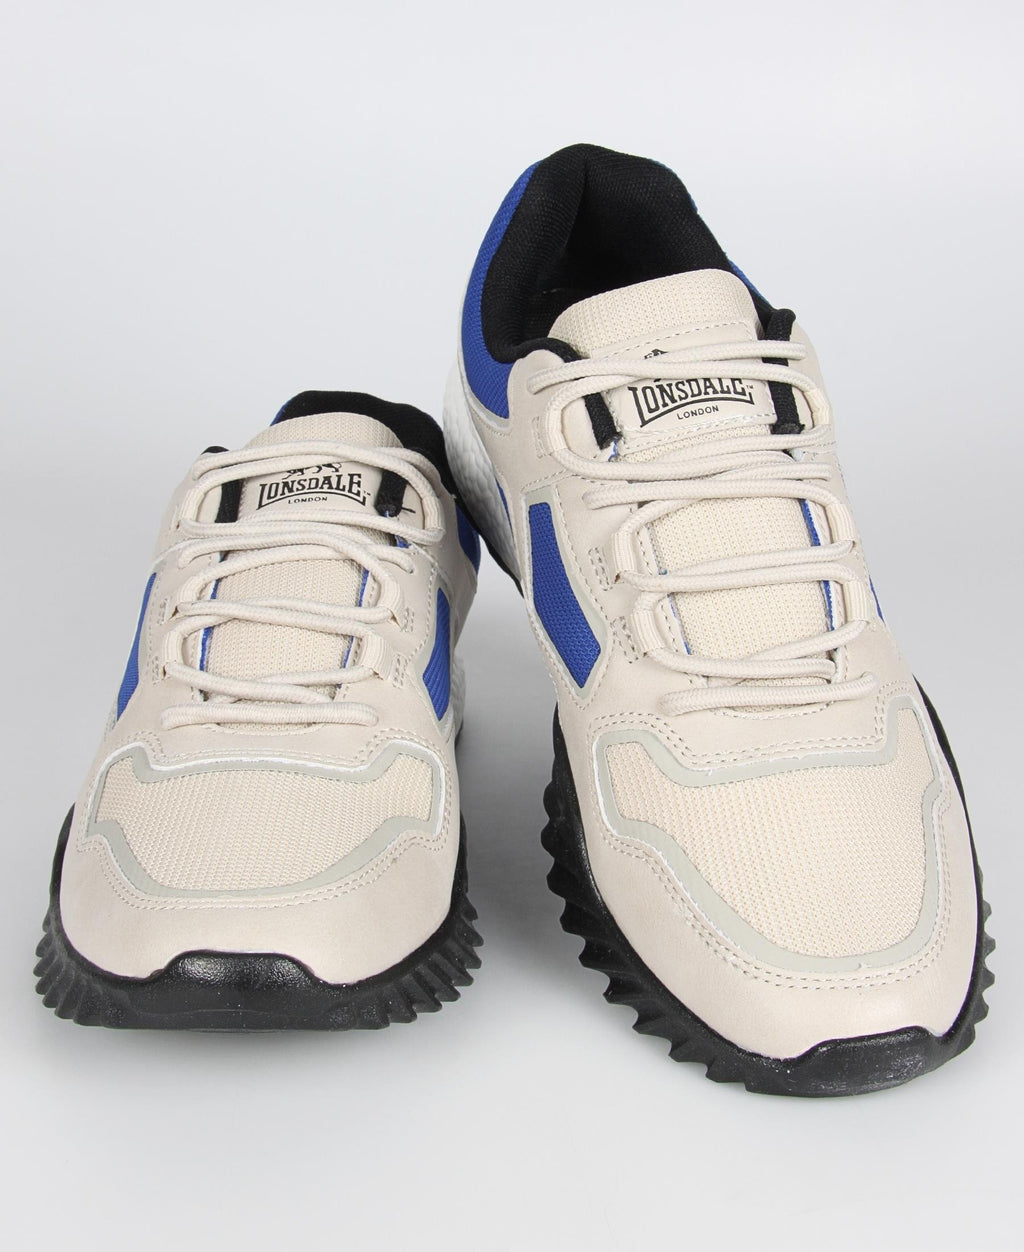 Men's Casual Sneakers - Black-Blue